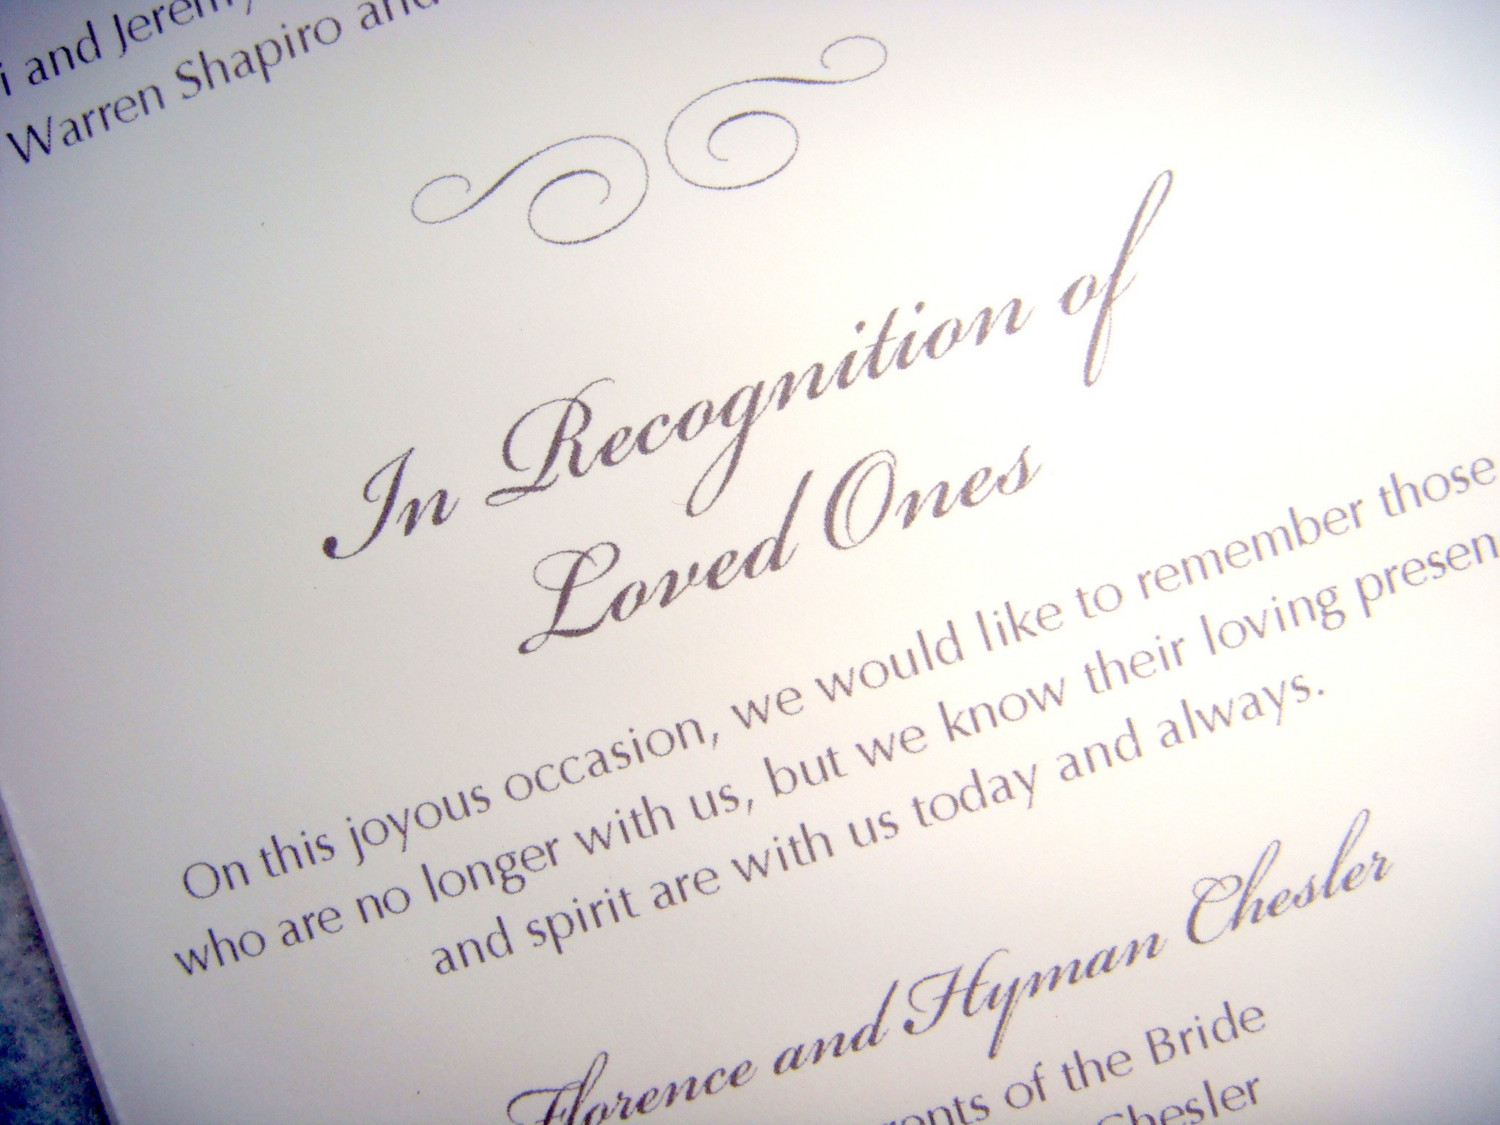 In Memory of Loved Ones http://blog.myweddingreceptionideas.com/2012/03/how-to-honor-lost-loved-ones-at-your.html